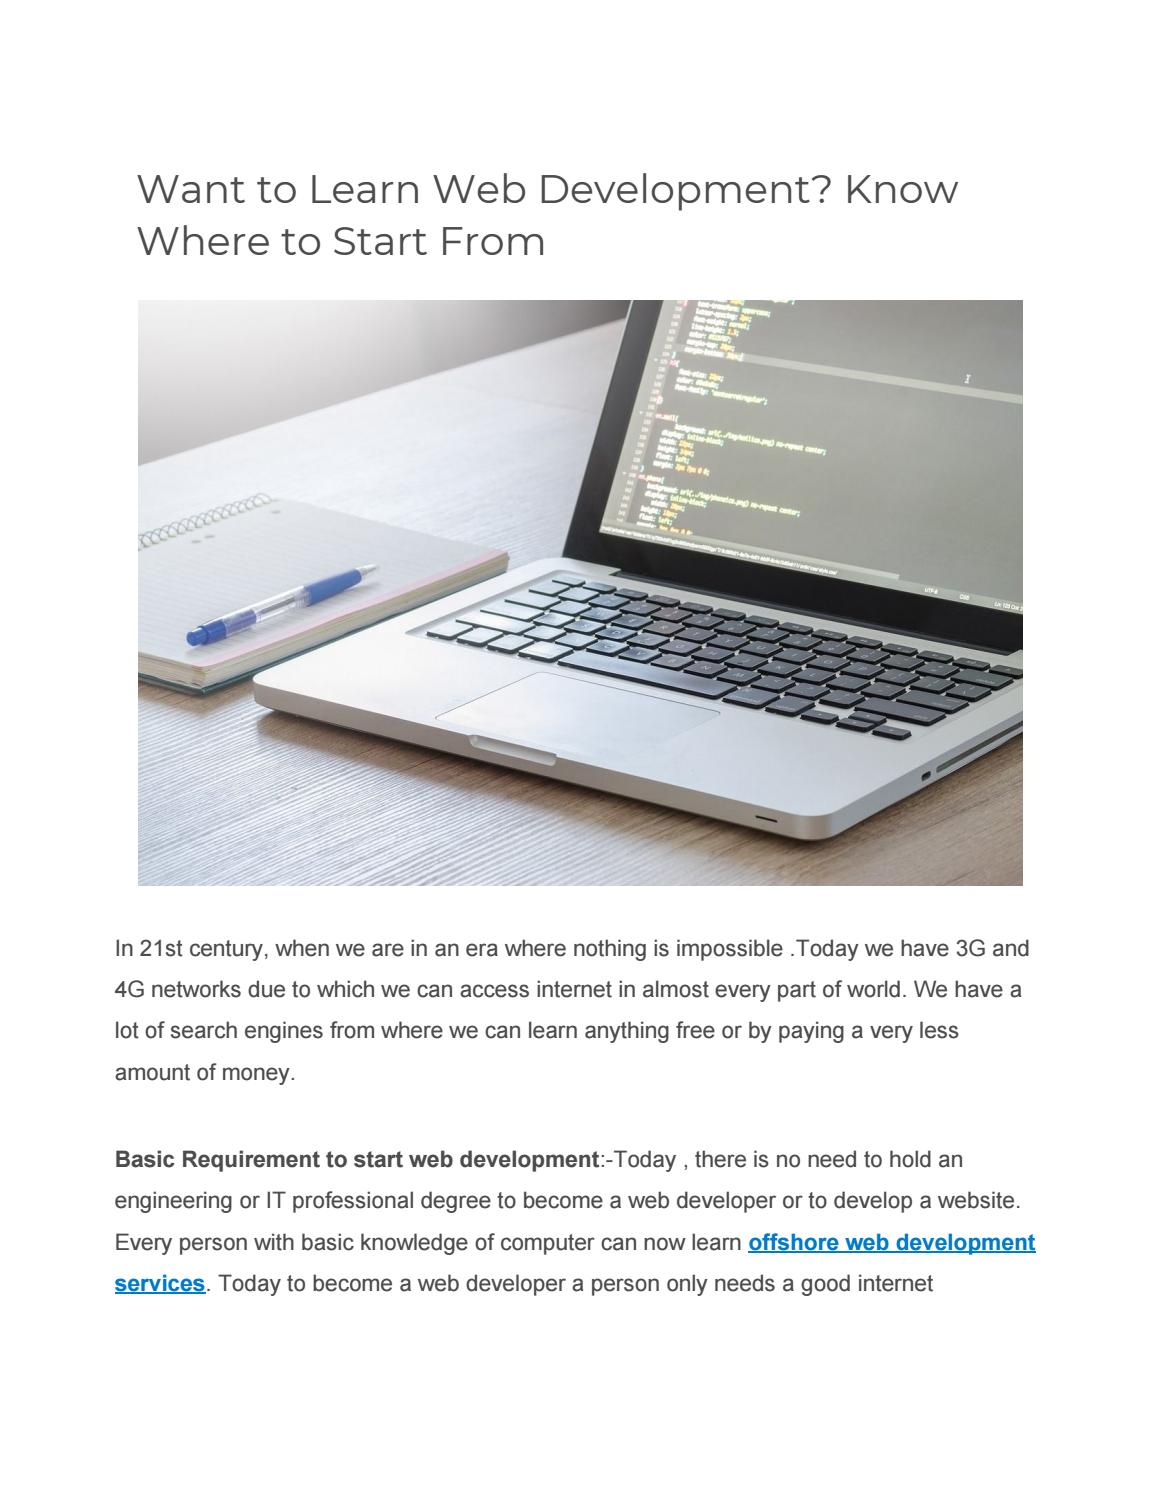 Want To Learn Web Development Know Where To Start From By D Amies Technologies Pvt Ltd Issuu